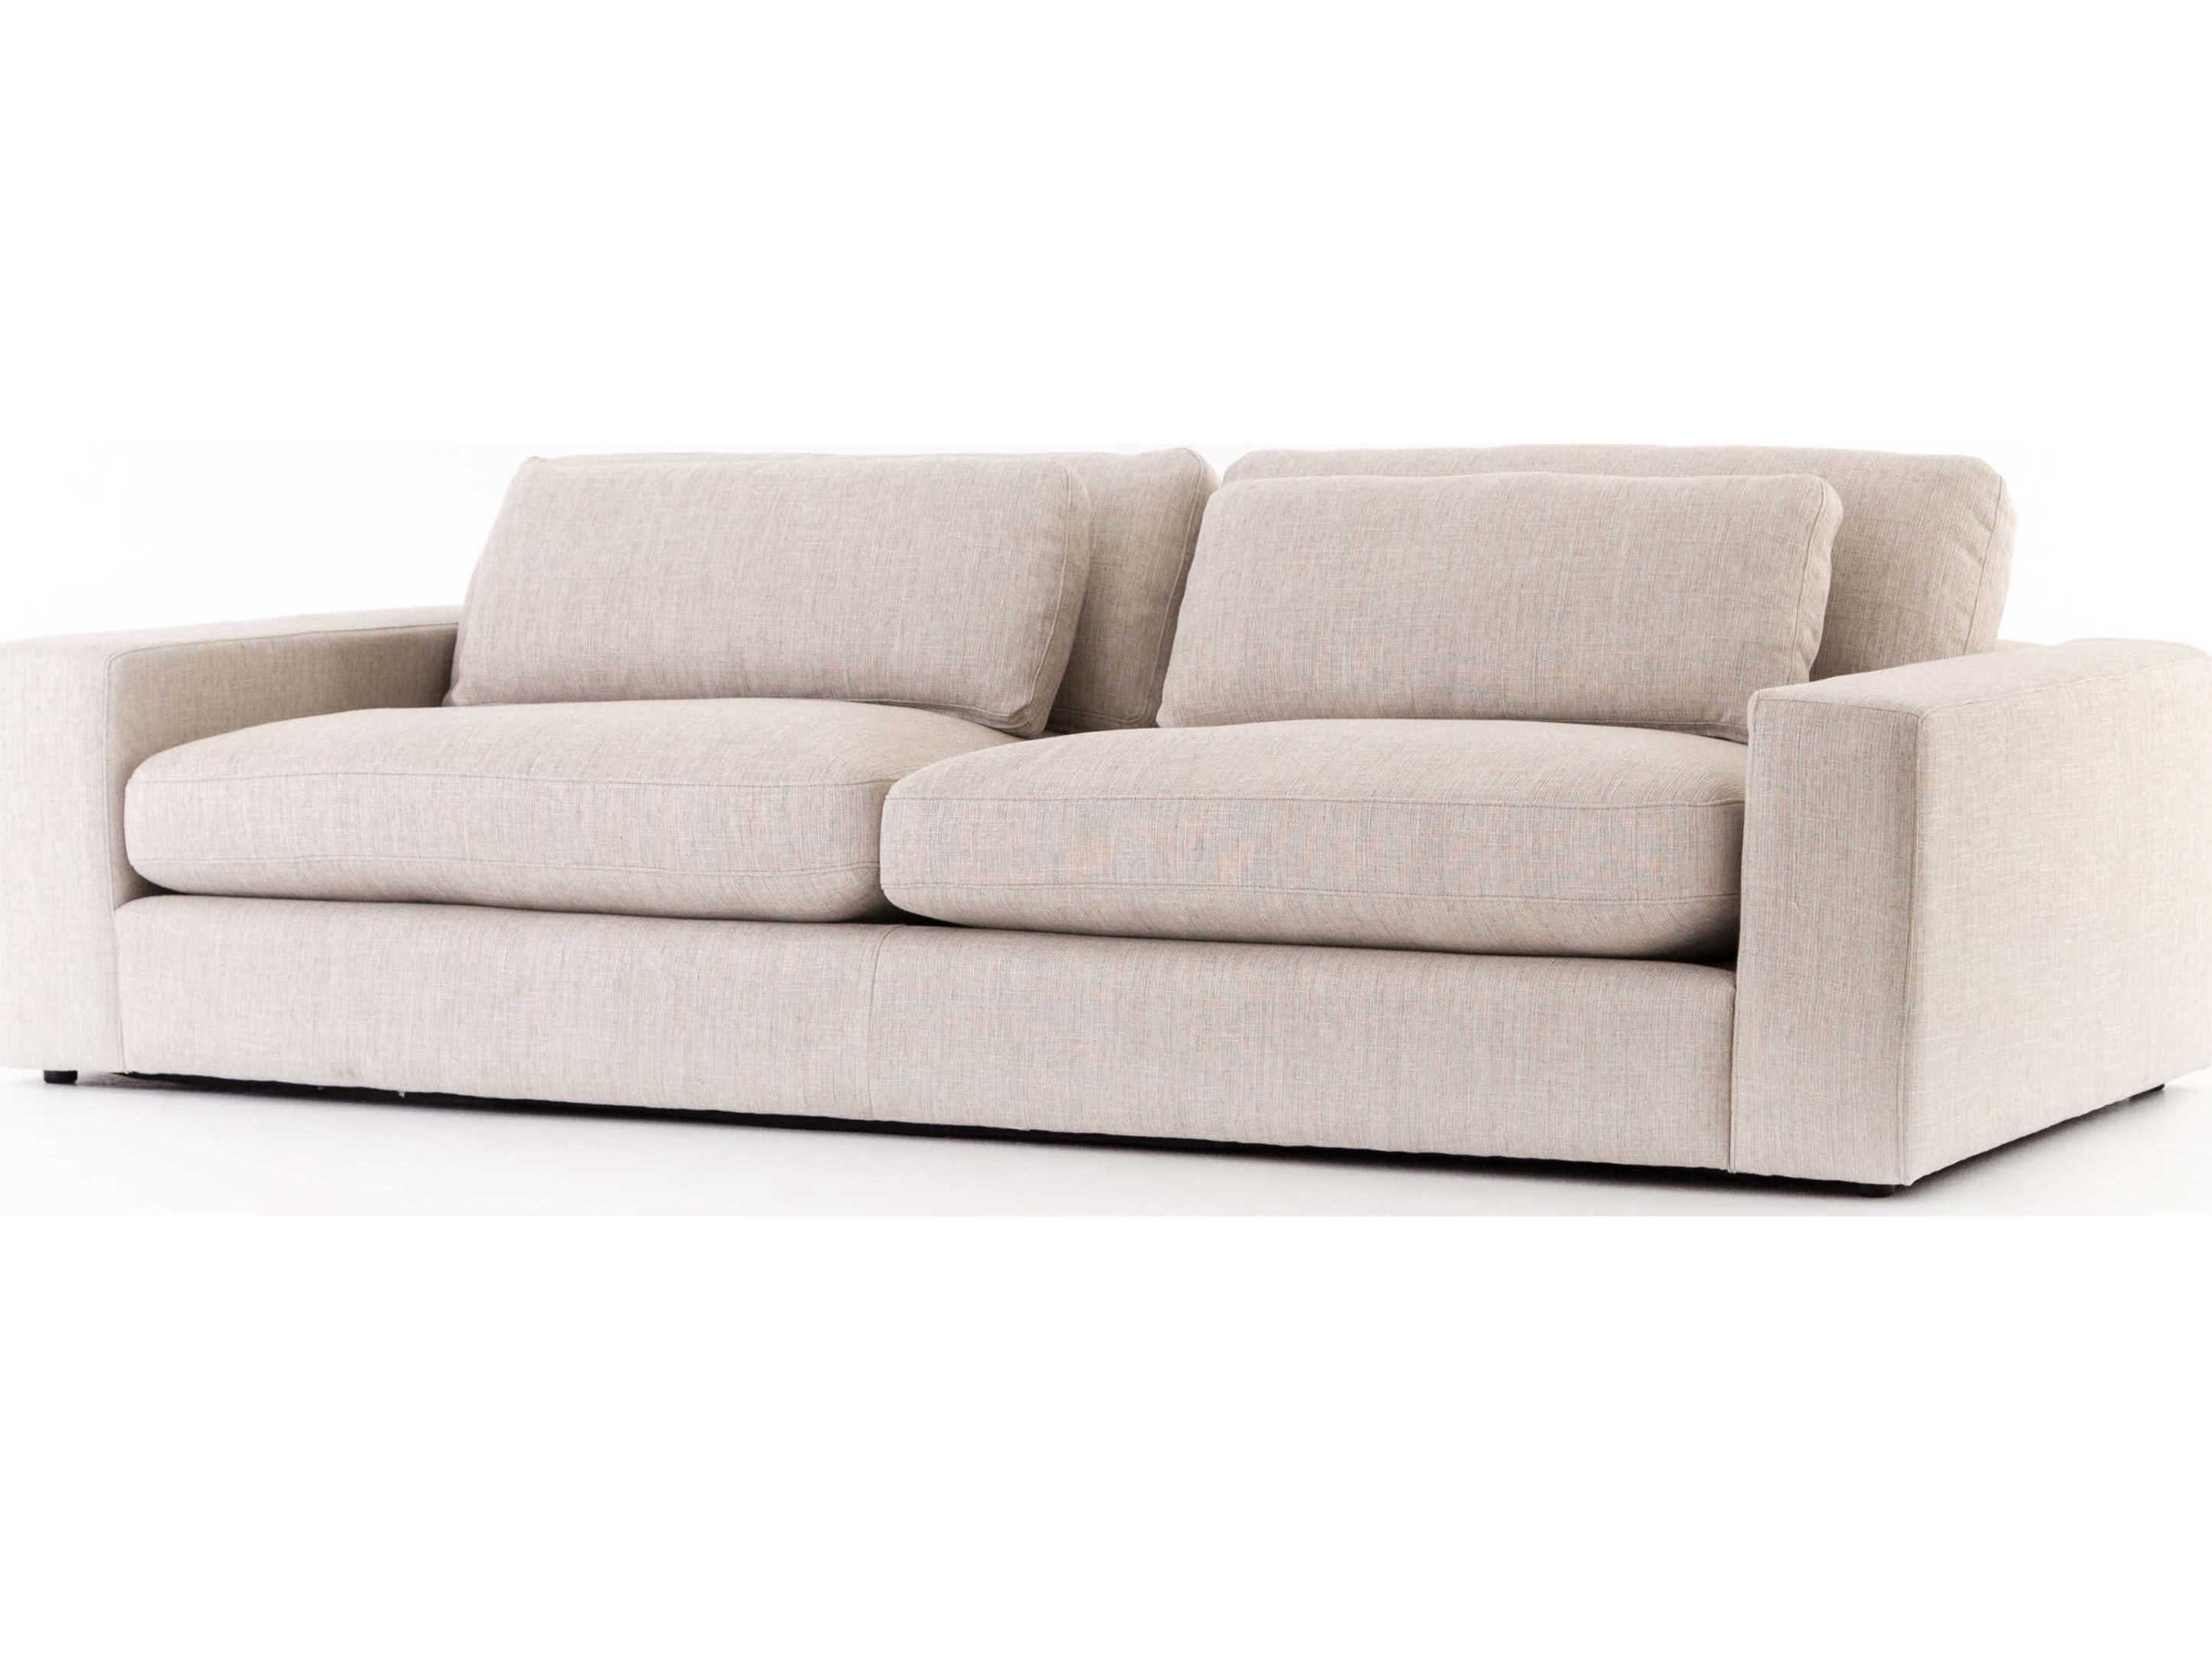 Pleasant Four Hands Atelier Essence Natural Sofa Couch Ibusinesslaw Wood Chair Design Ideas Ibusinesslaworg